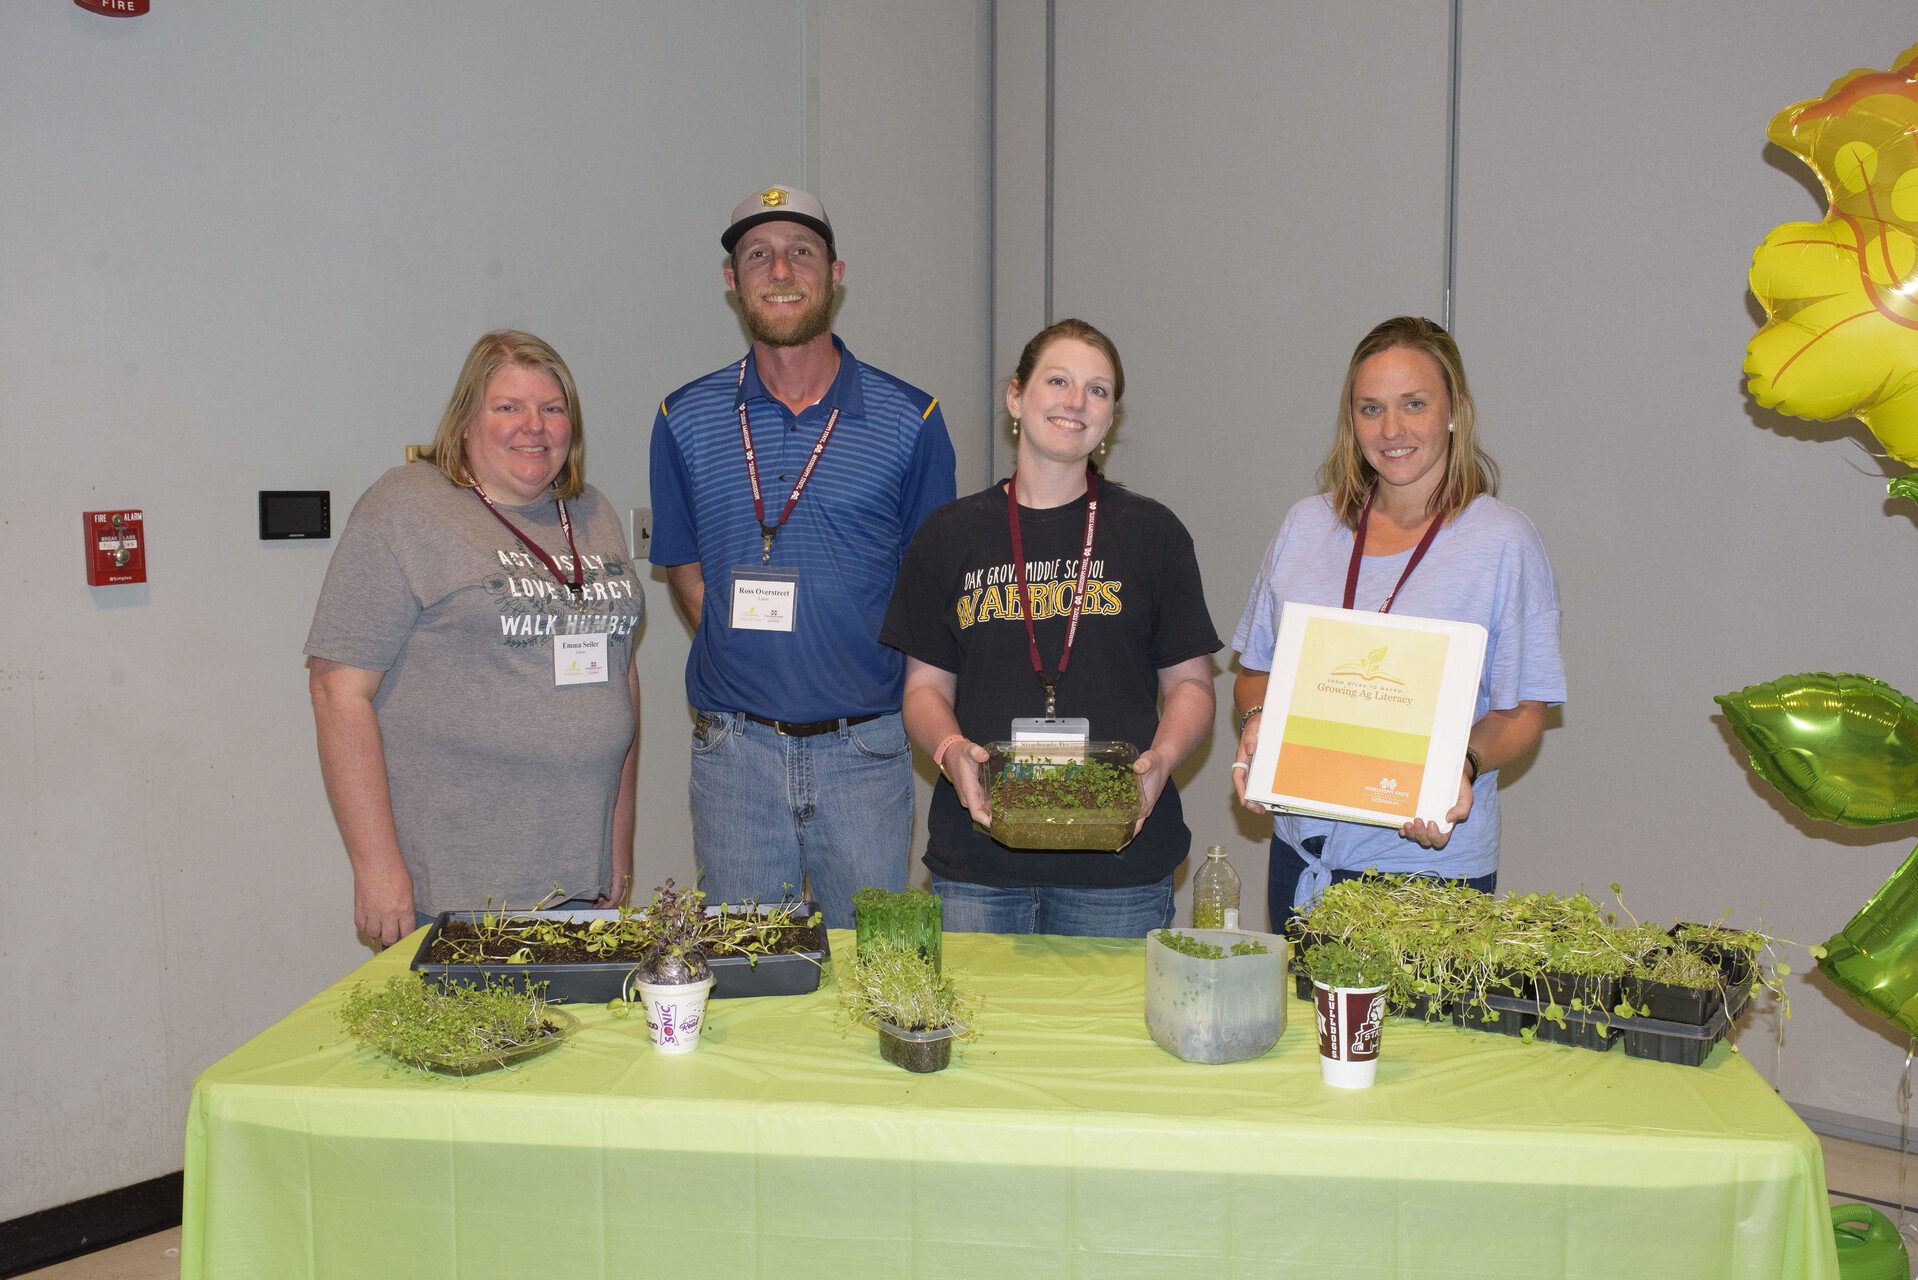 Three women and one man pose in front of a table filled with containers of microgreens